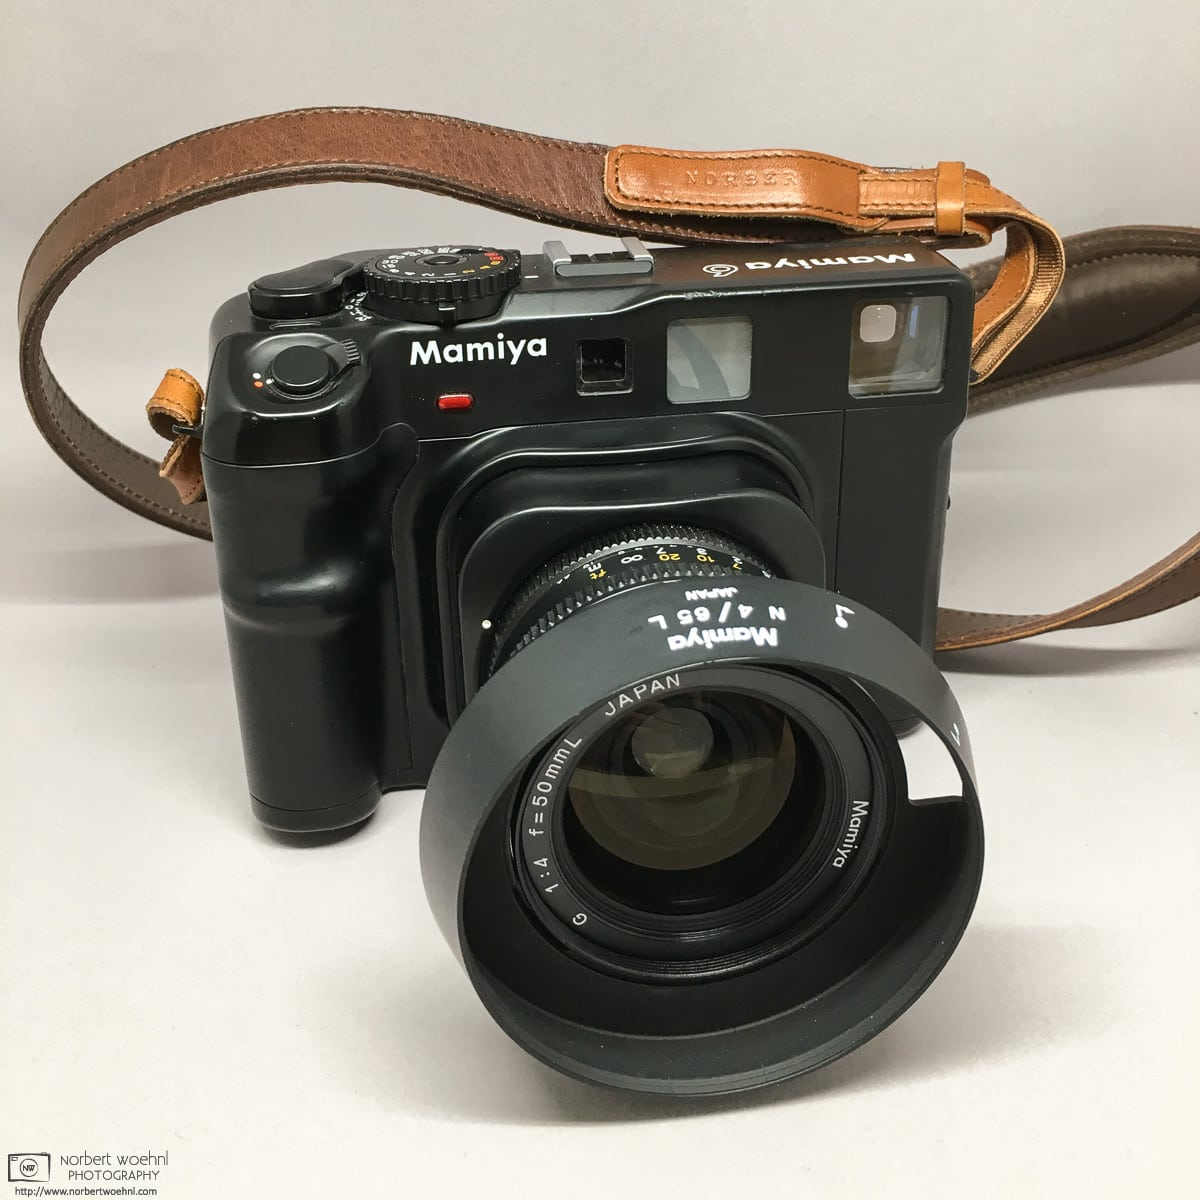 My Mamiya 6 with 50mm f/4.0 lens and leather strap photo